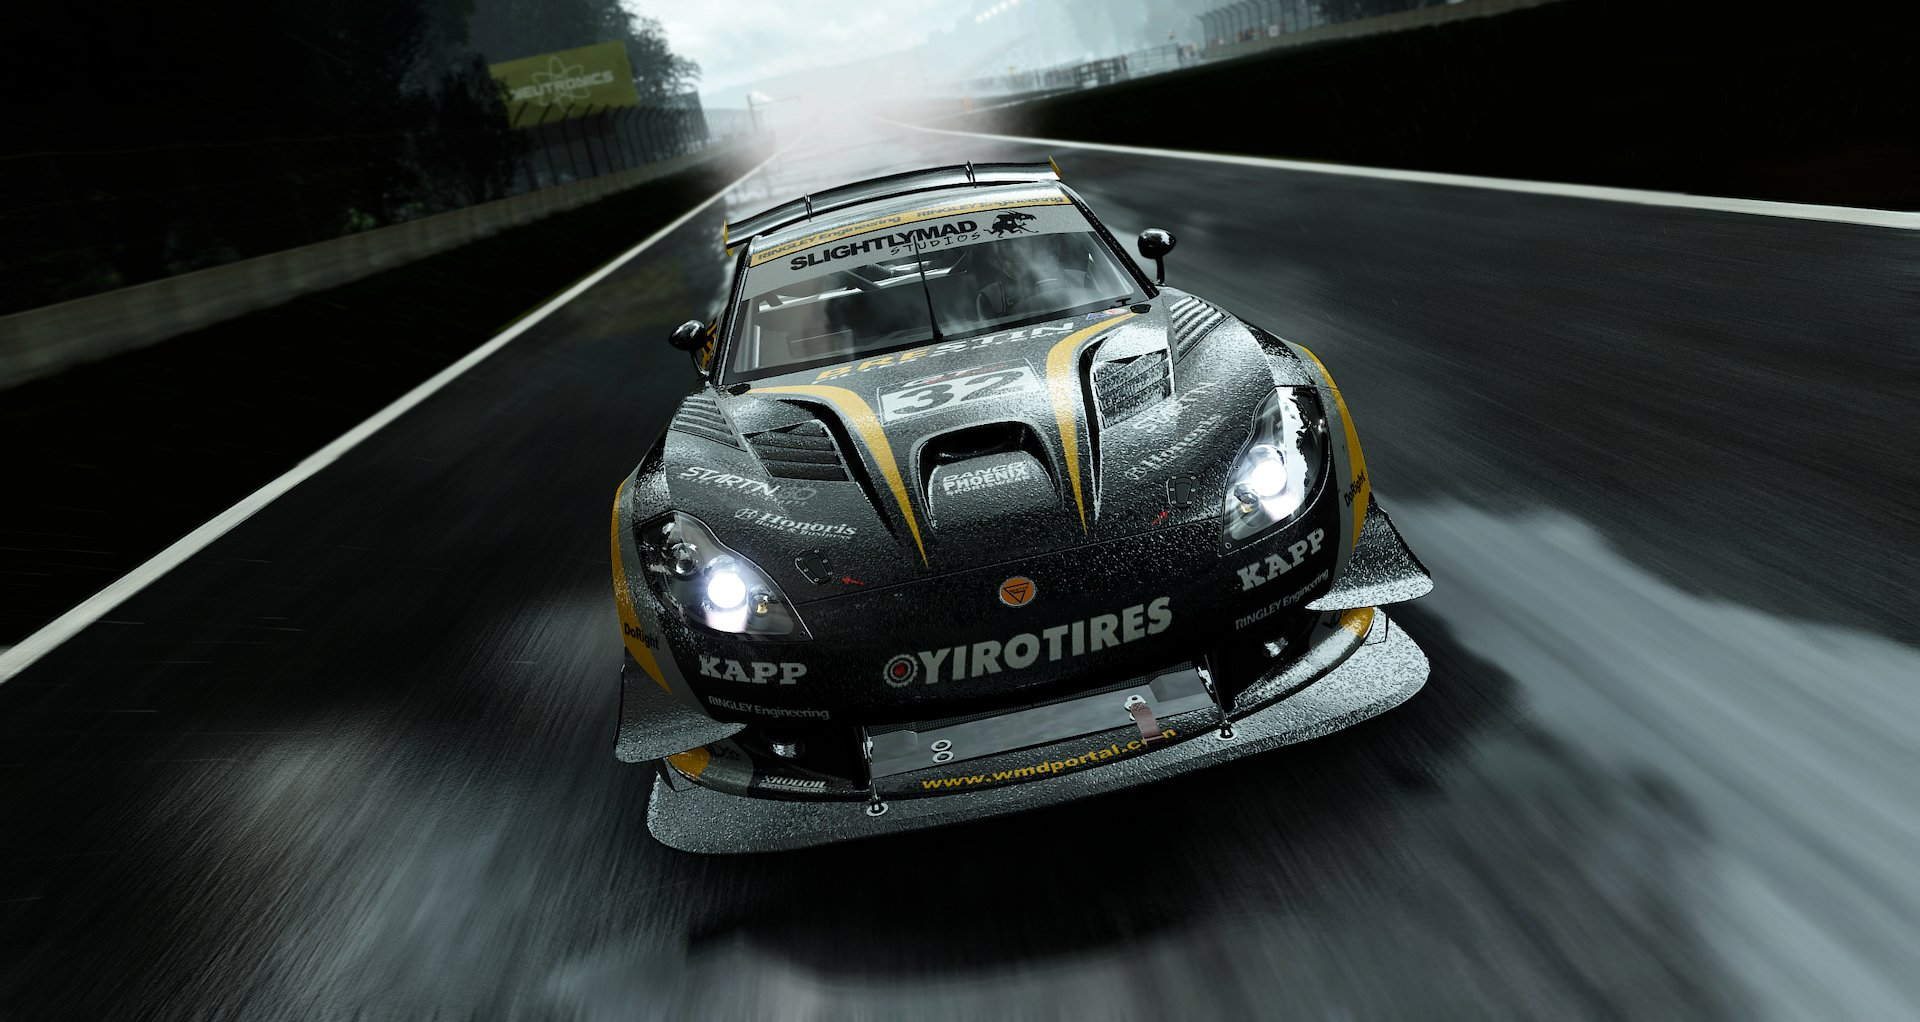 project cars endorsement deals